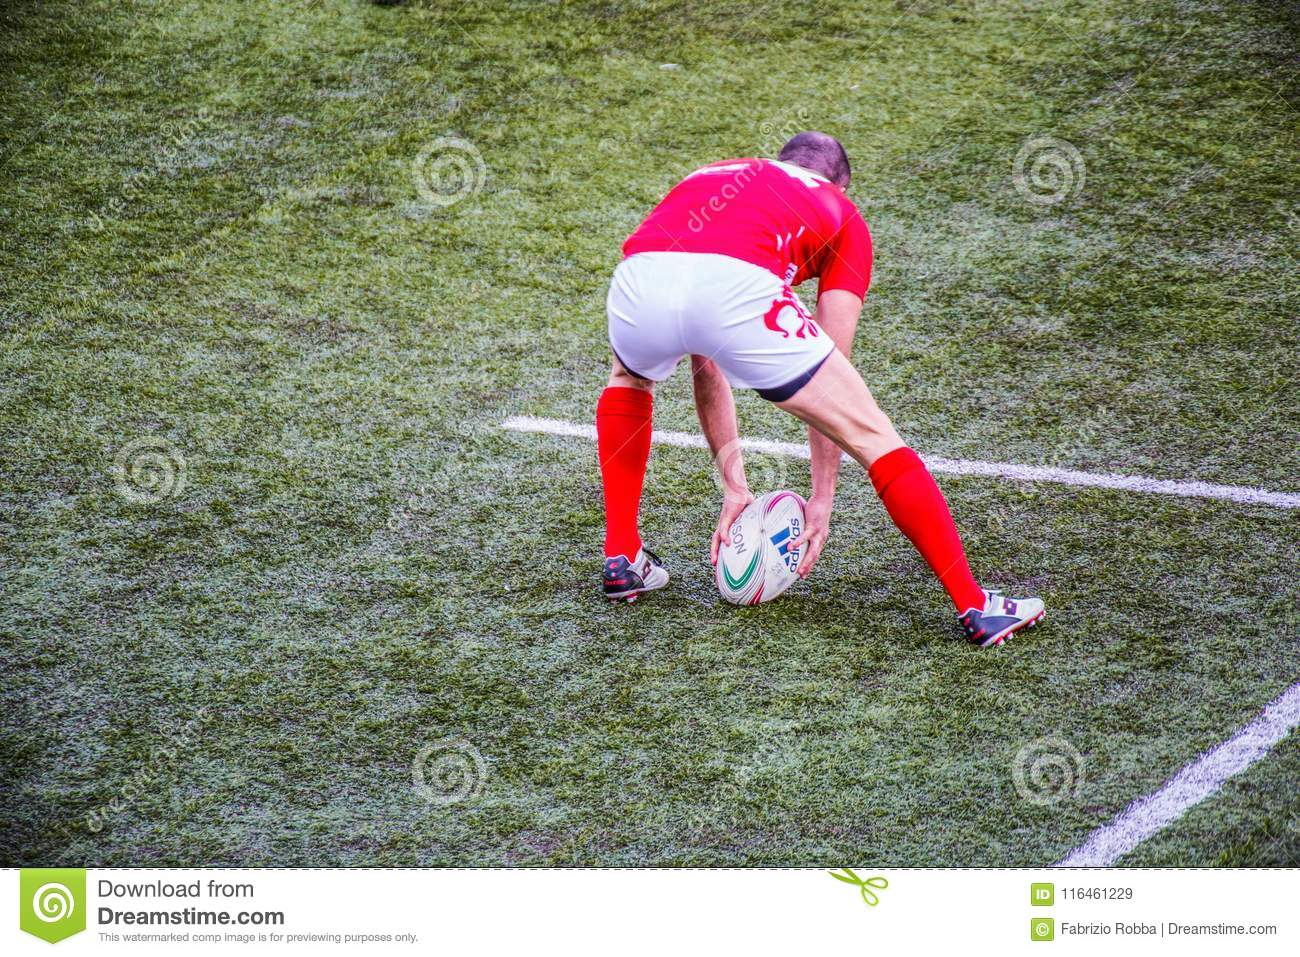 Rugby player grabs the oval ball